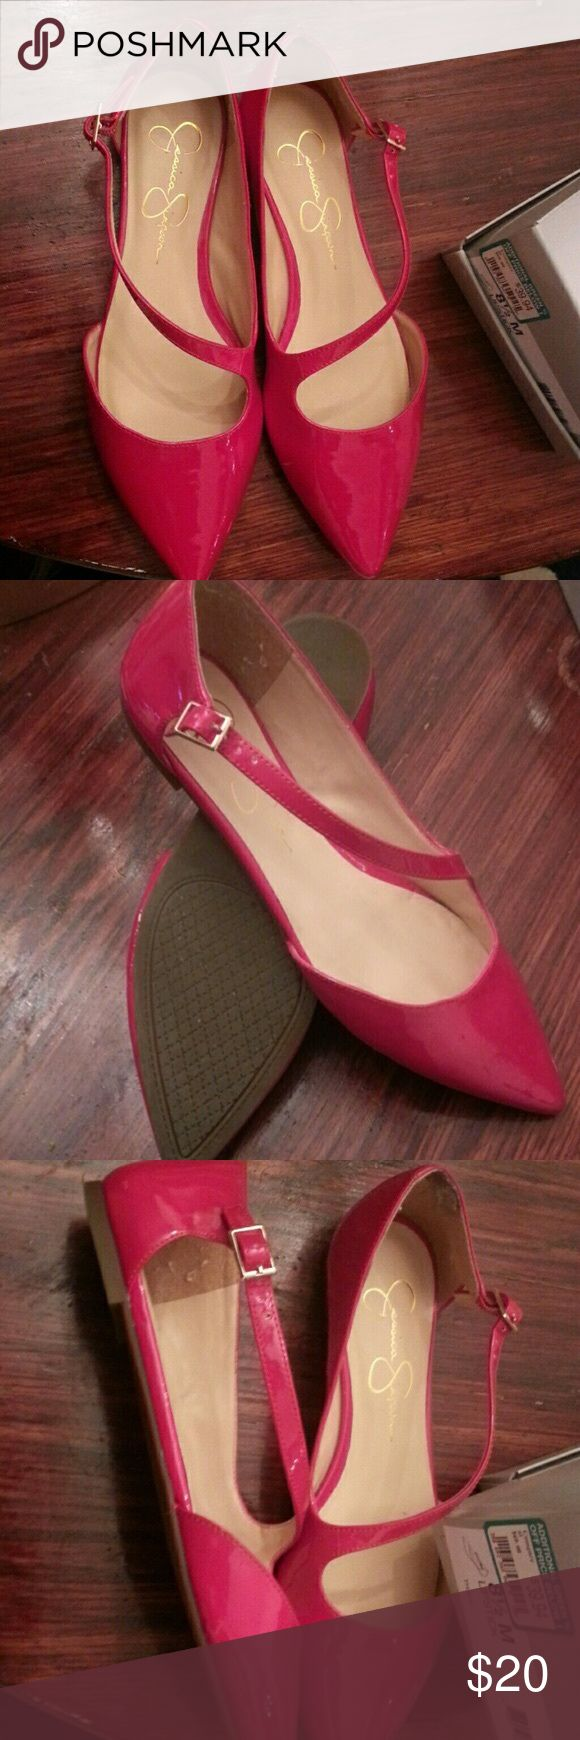 Jessica Simpson red flats Jessica Simpson, cute red flats, condition like new no visible signs of wear Jessica Simpson Shoes Flats & Loafers